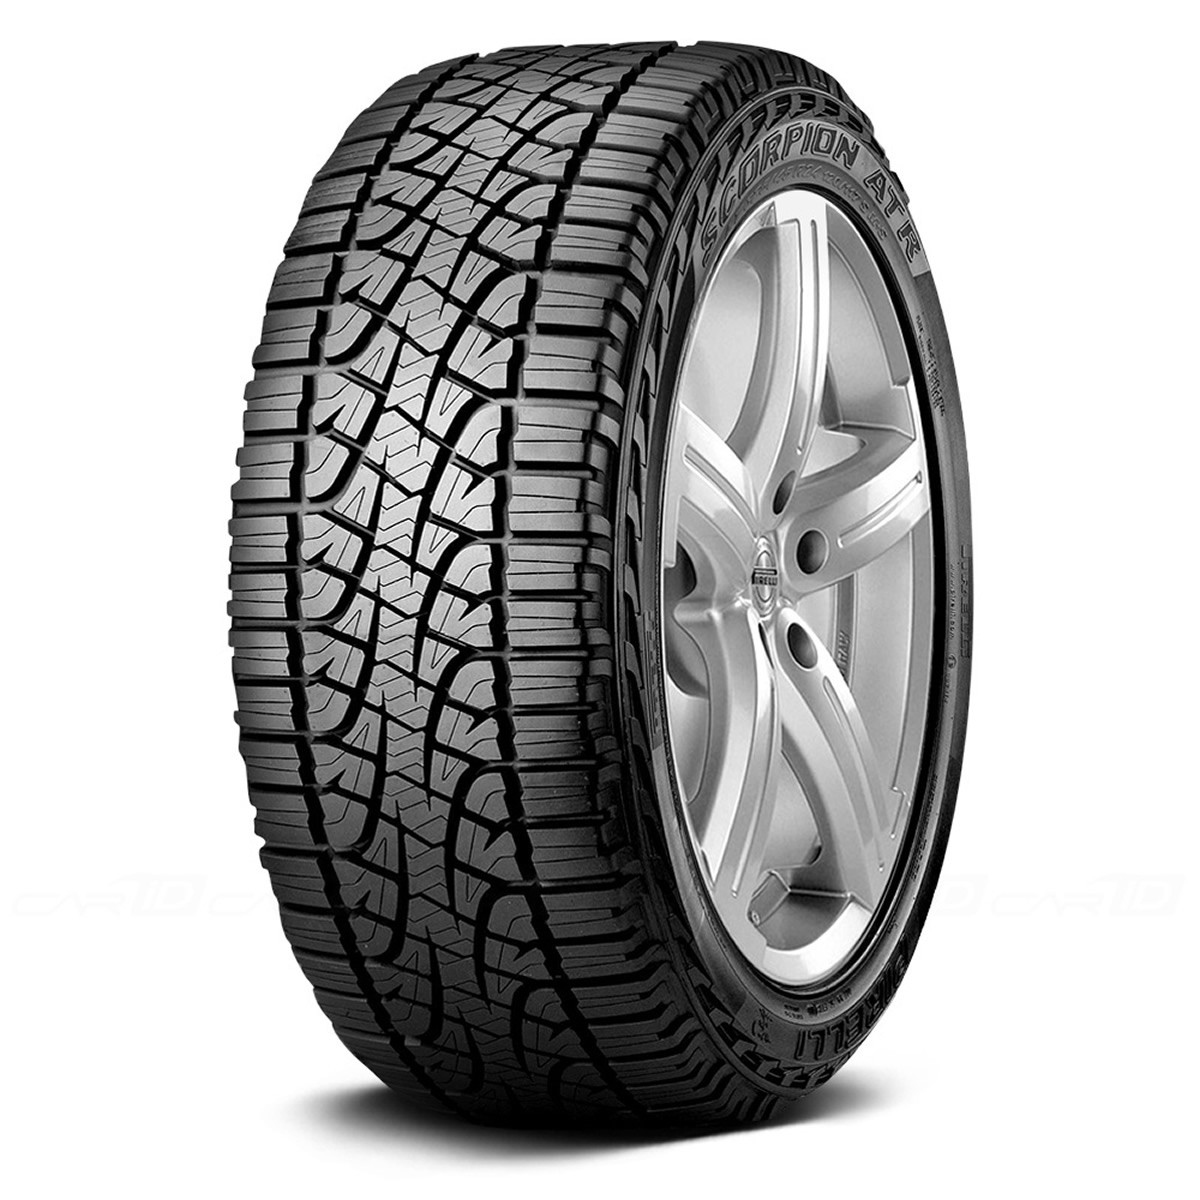 Pirelli Scorpion All Terrain Plus 275/65 R 17 Tubeless 115 T Car Tyre